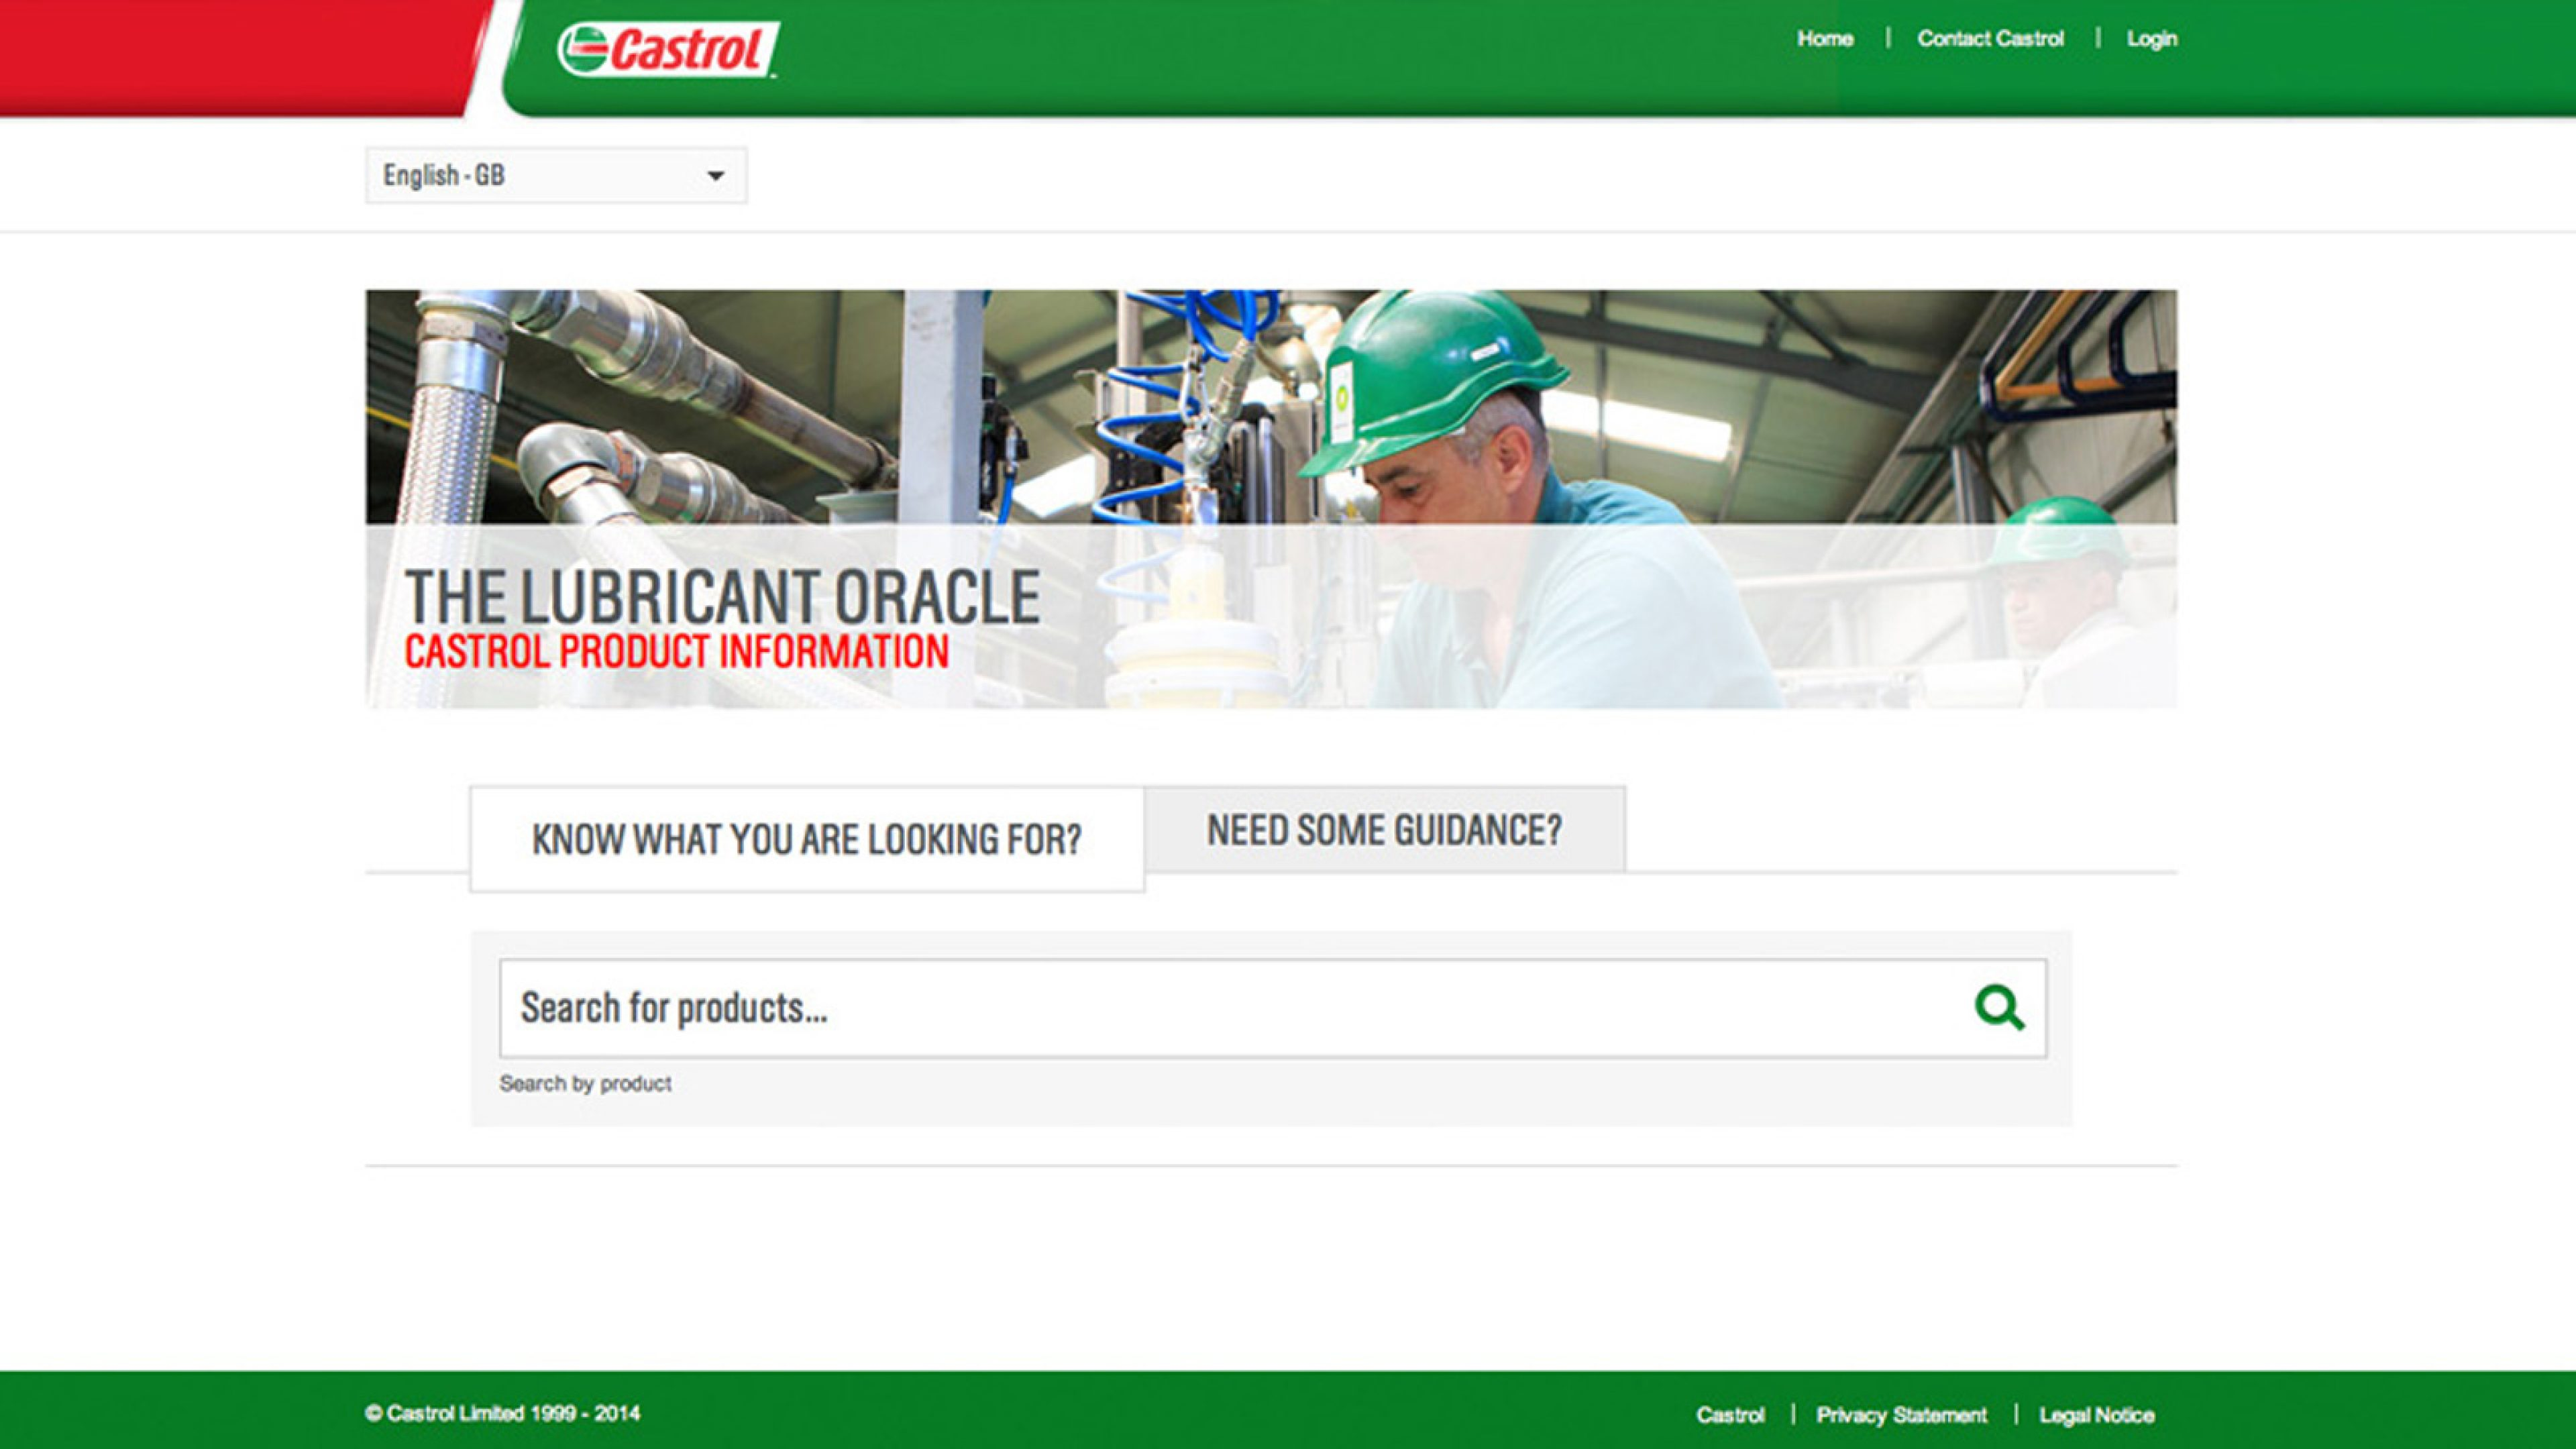 Castrol Directory of Marine Services